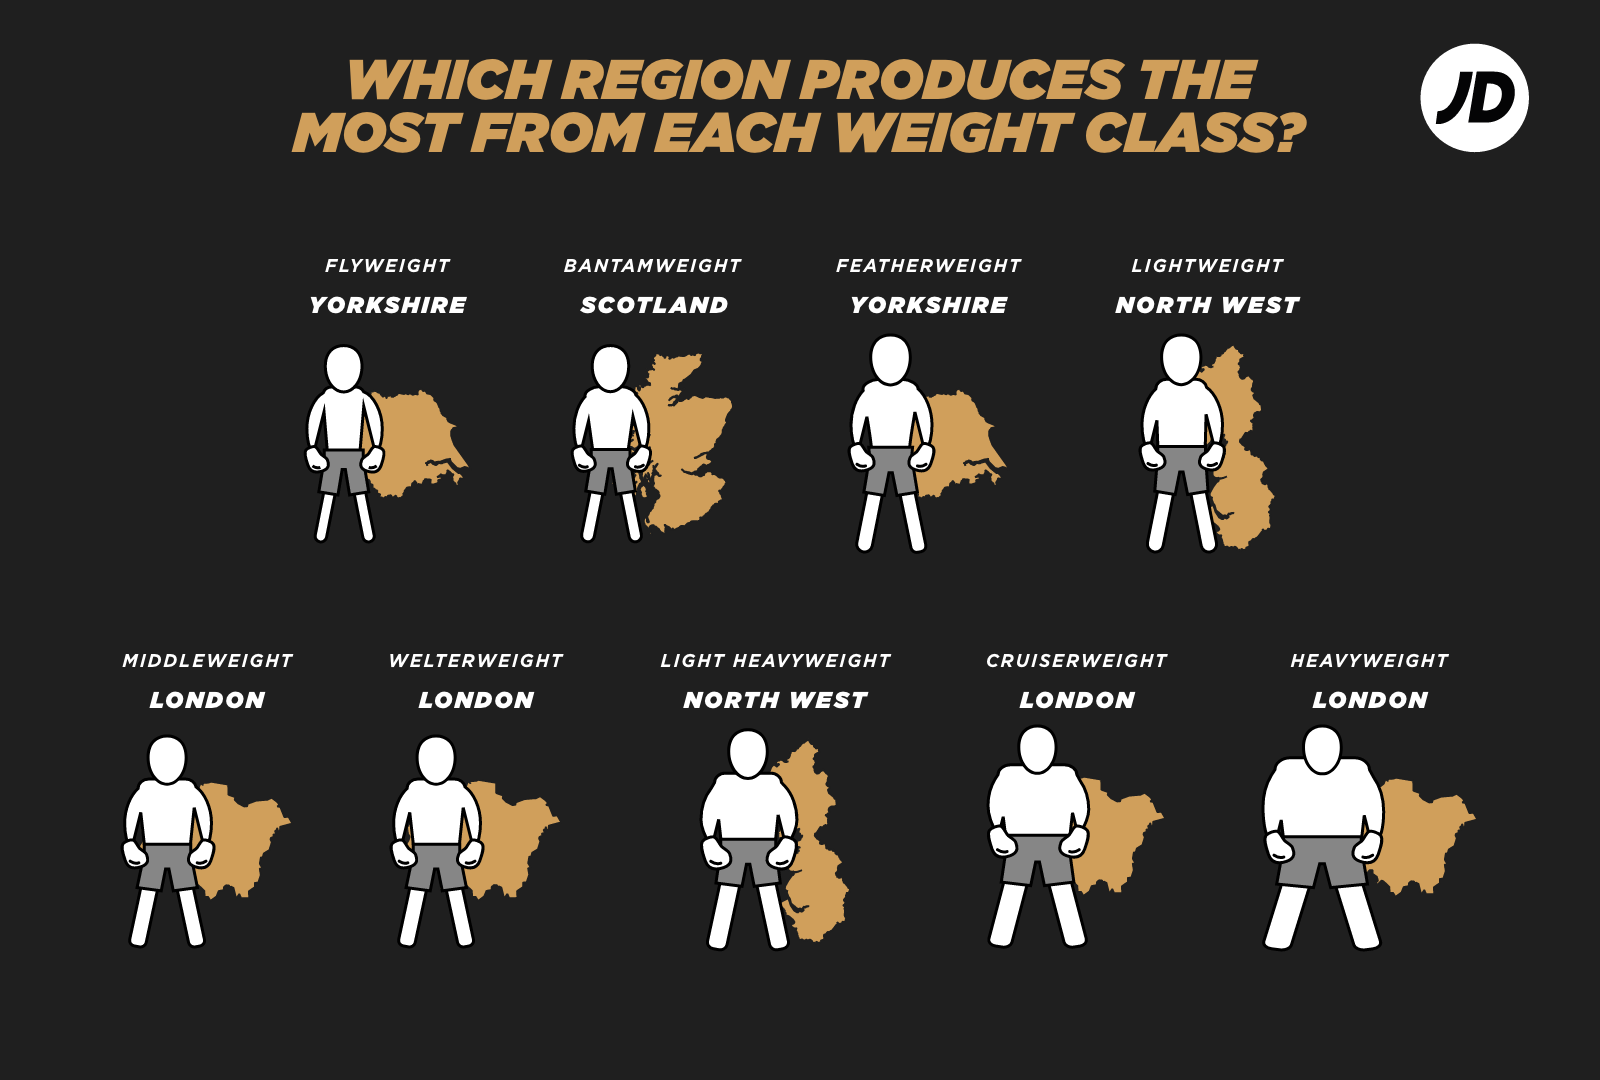 Ehich UK region produces the most from each boxing weight class